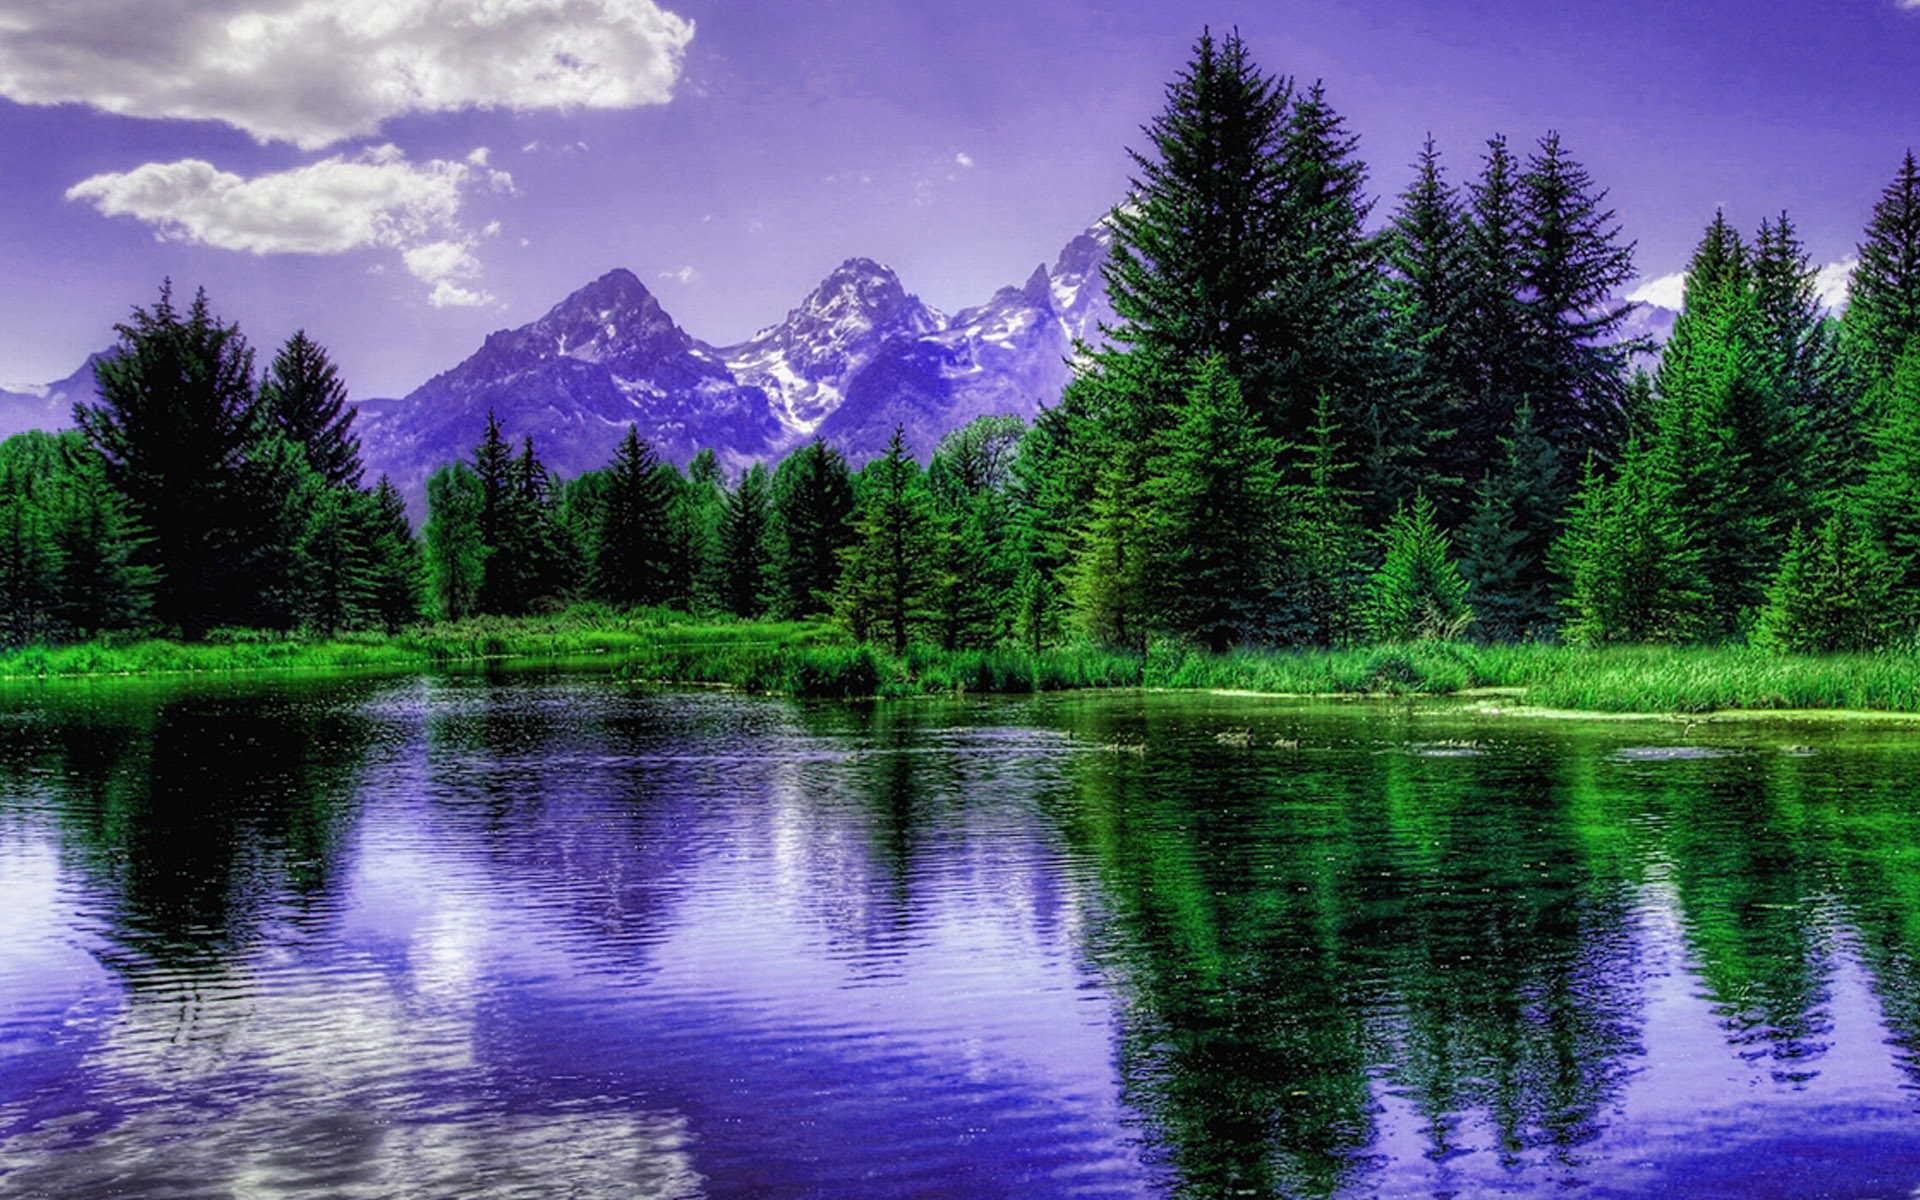 purple-mountains-behind-the-trees-hd-wallpaper